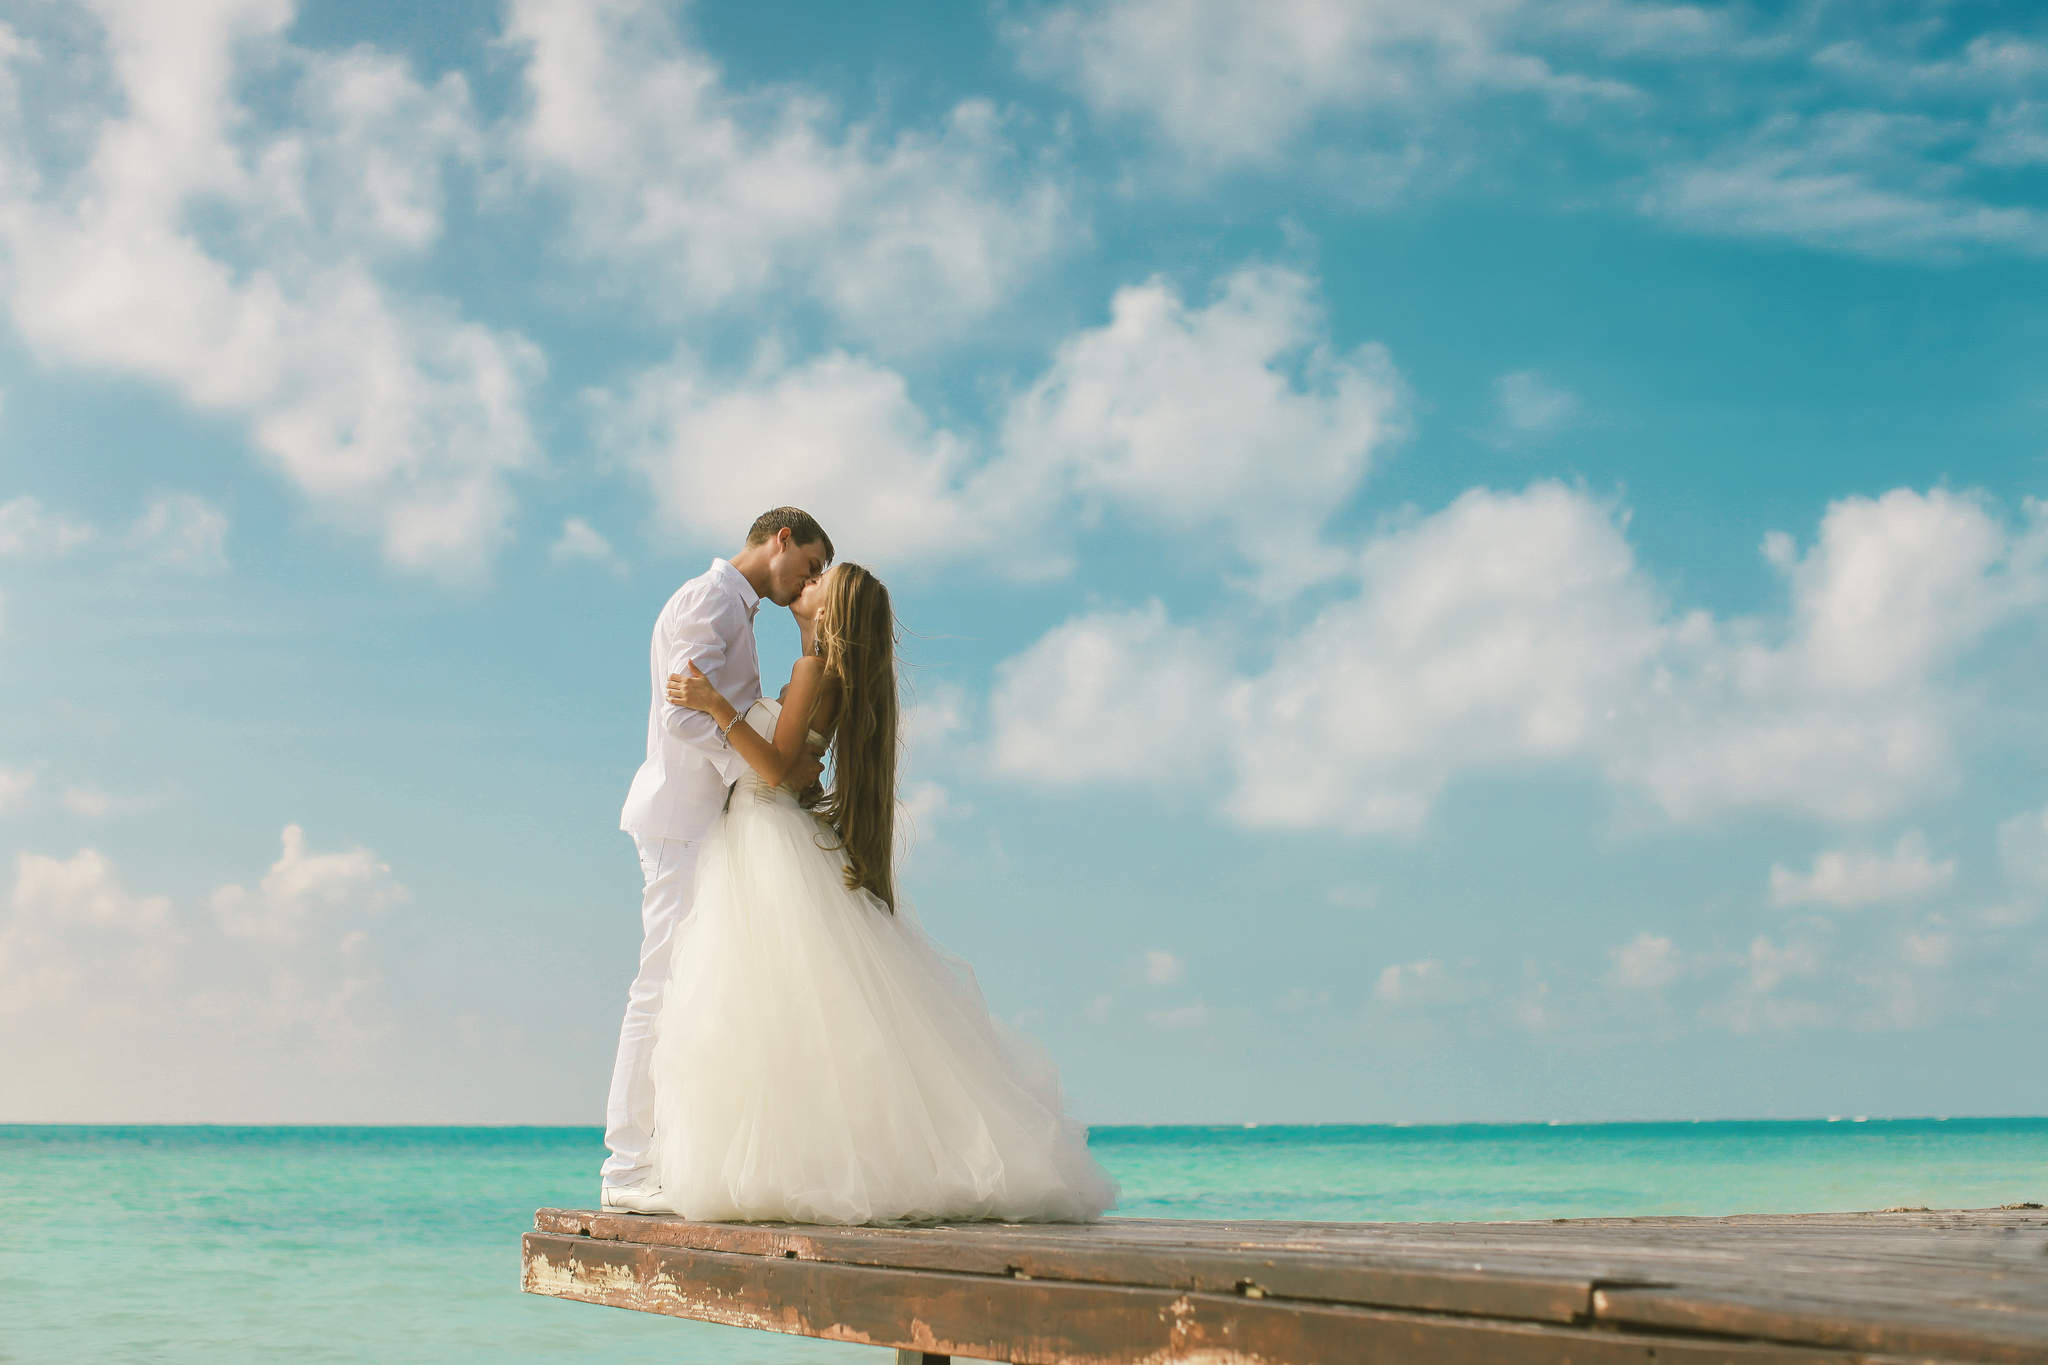 Desktop Wallpapers grooms Bride Wedding Couples in love Sea Girls Sky Clouds gown Groom noces brides marriage lovers female young woman frock Dress